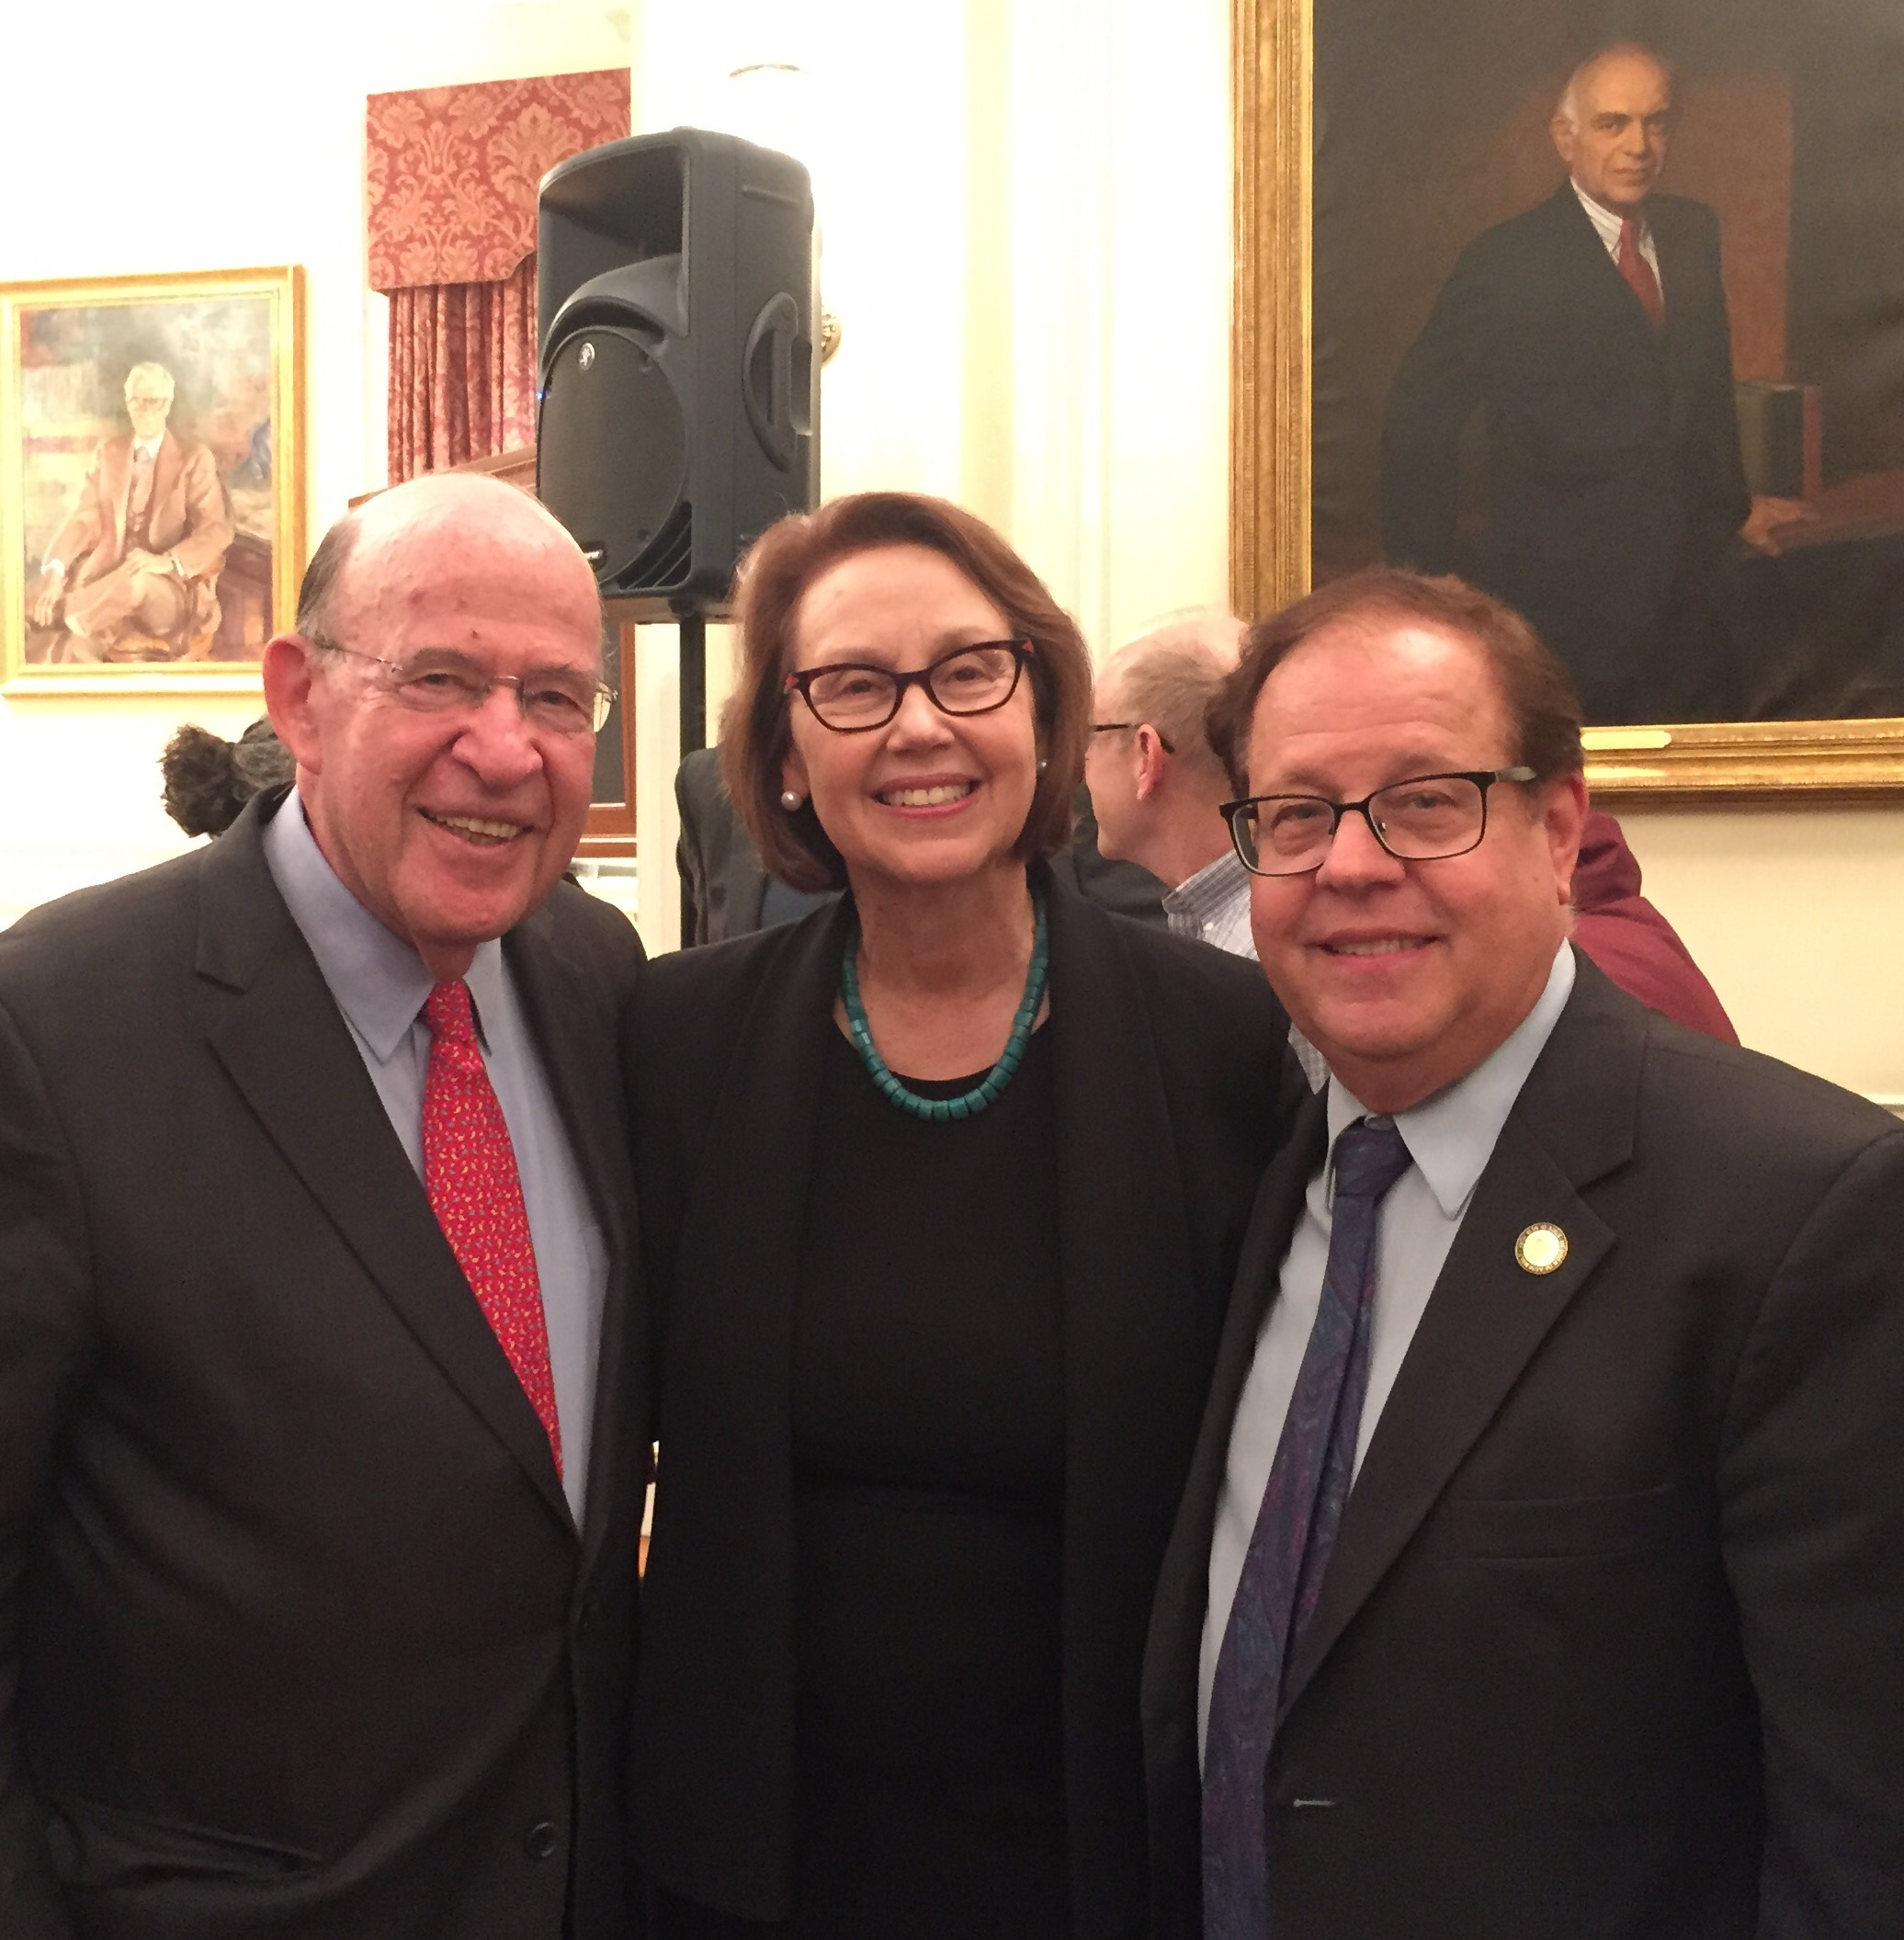 Assemblyman Abinanti attended the NYU Abram's lecture with former NYS Attorney General Robert Abrams.